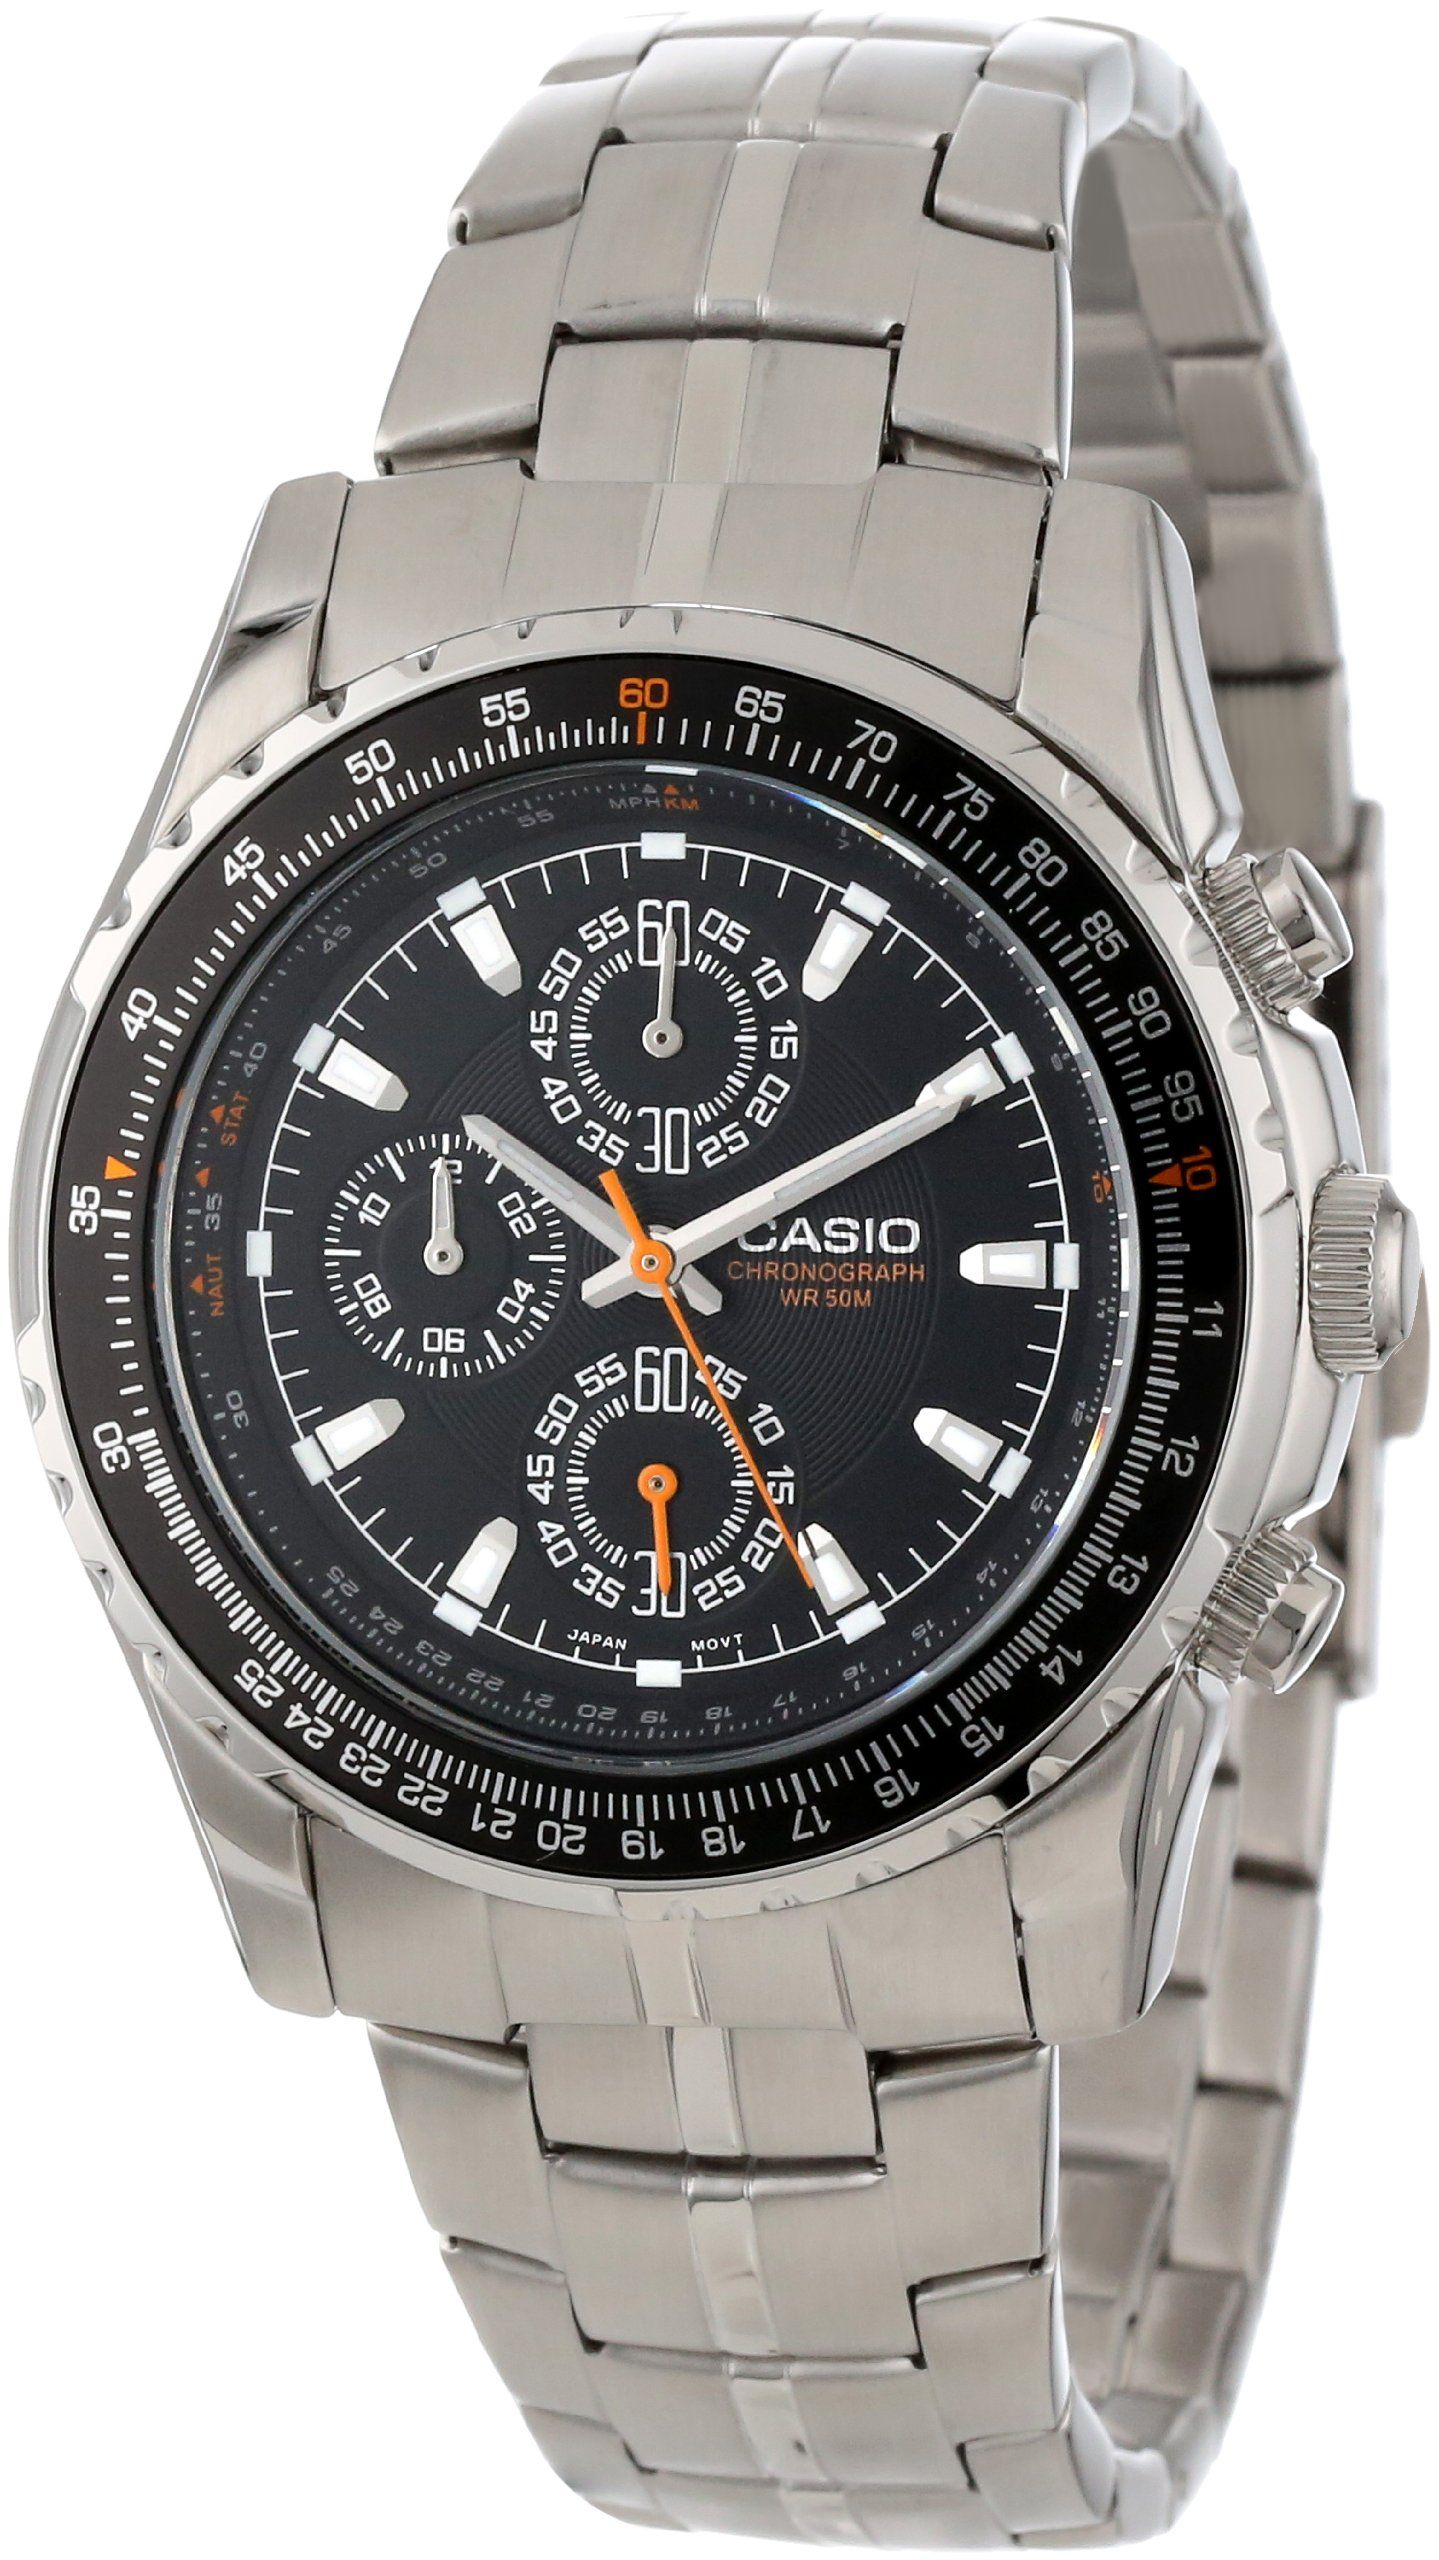 b748e0235 Nice-looking and functional at a low price. Amazon.com: Casio Men's  MTP4500D-1AV Slide Rule Bezel Analog Chronograph Aviator Watch: Casio:  Watches